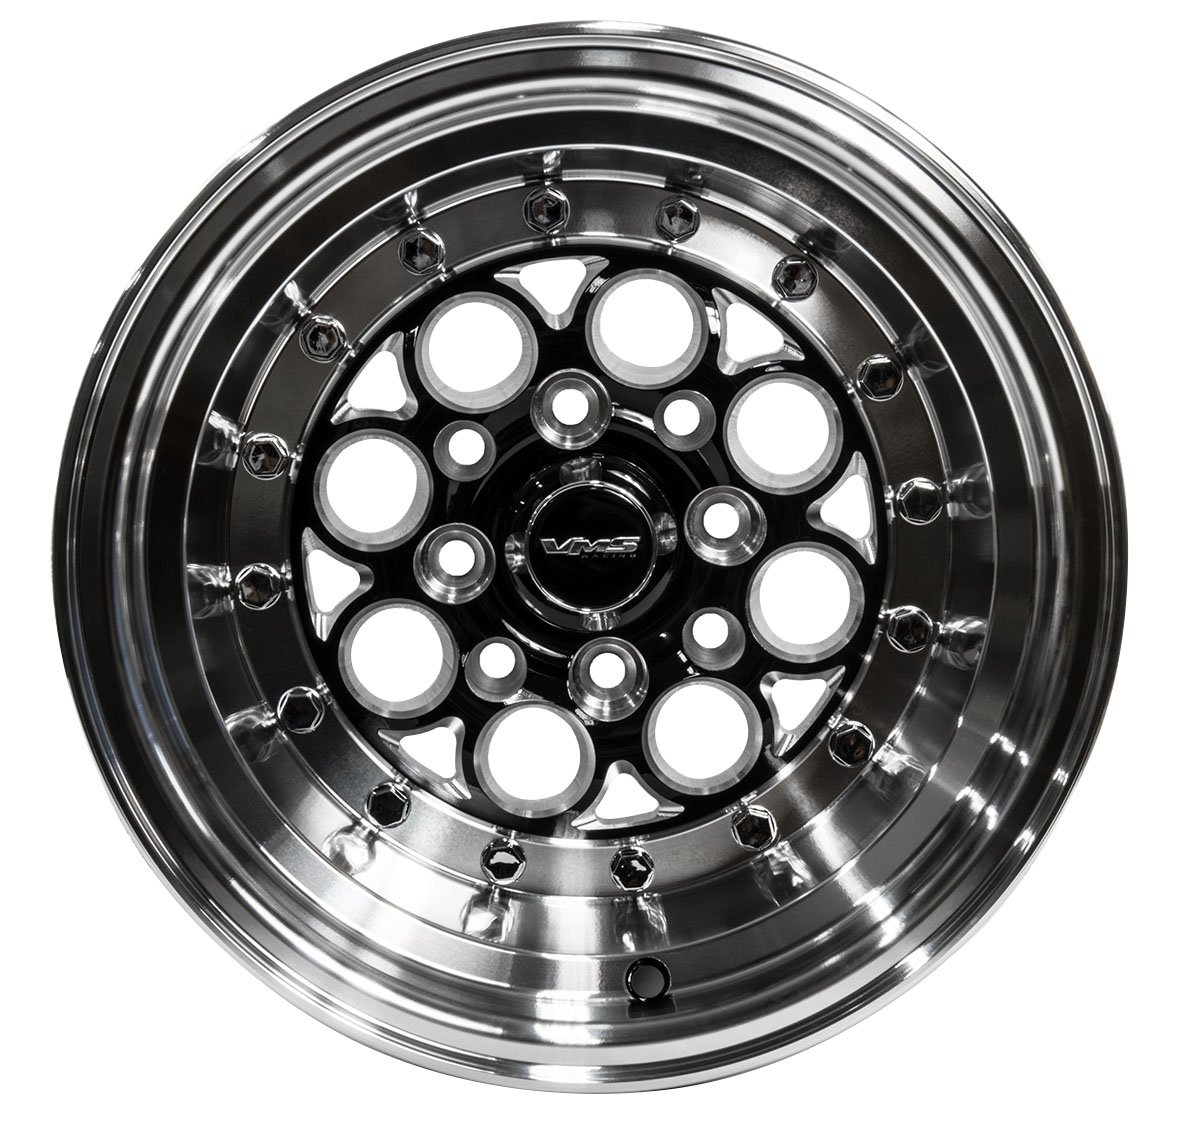 VMS RACING 13x9 Modulo 4 LUG Drag Track WHEELS RIMS 4x100 / 4x114 ET0 Offset 0 in BLACK SILVER Cast Machined Aluminum Compatible with Honda Civic 90-05 1990-2005 (4 lug pattern) (Pack of 2)